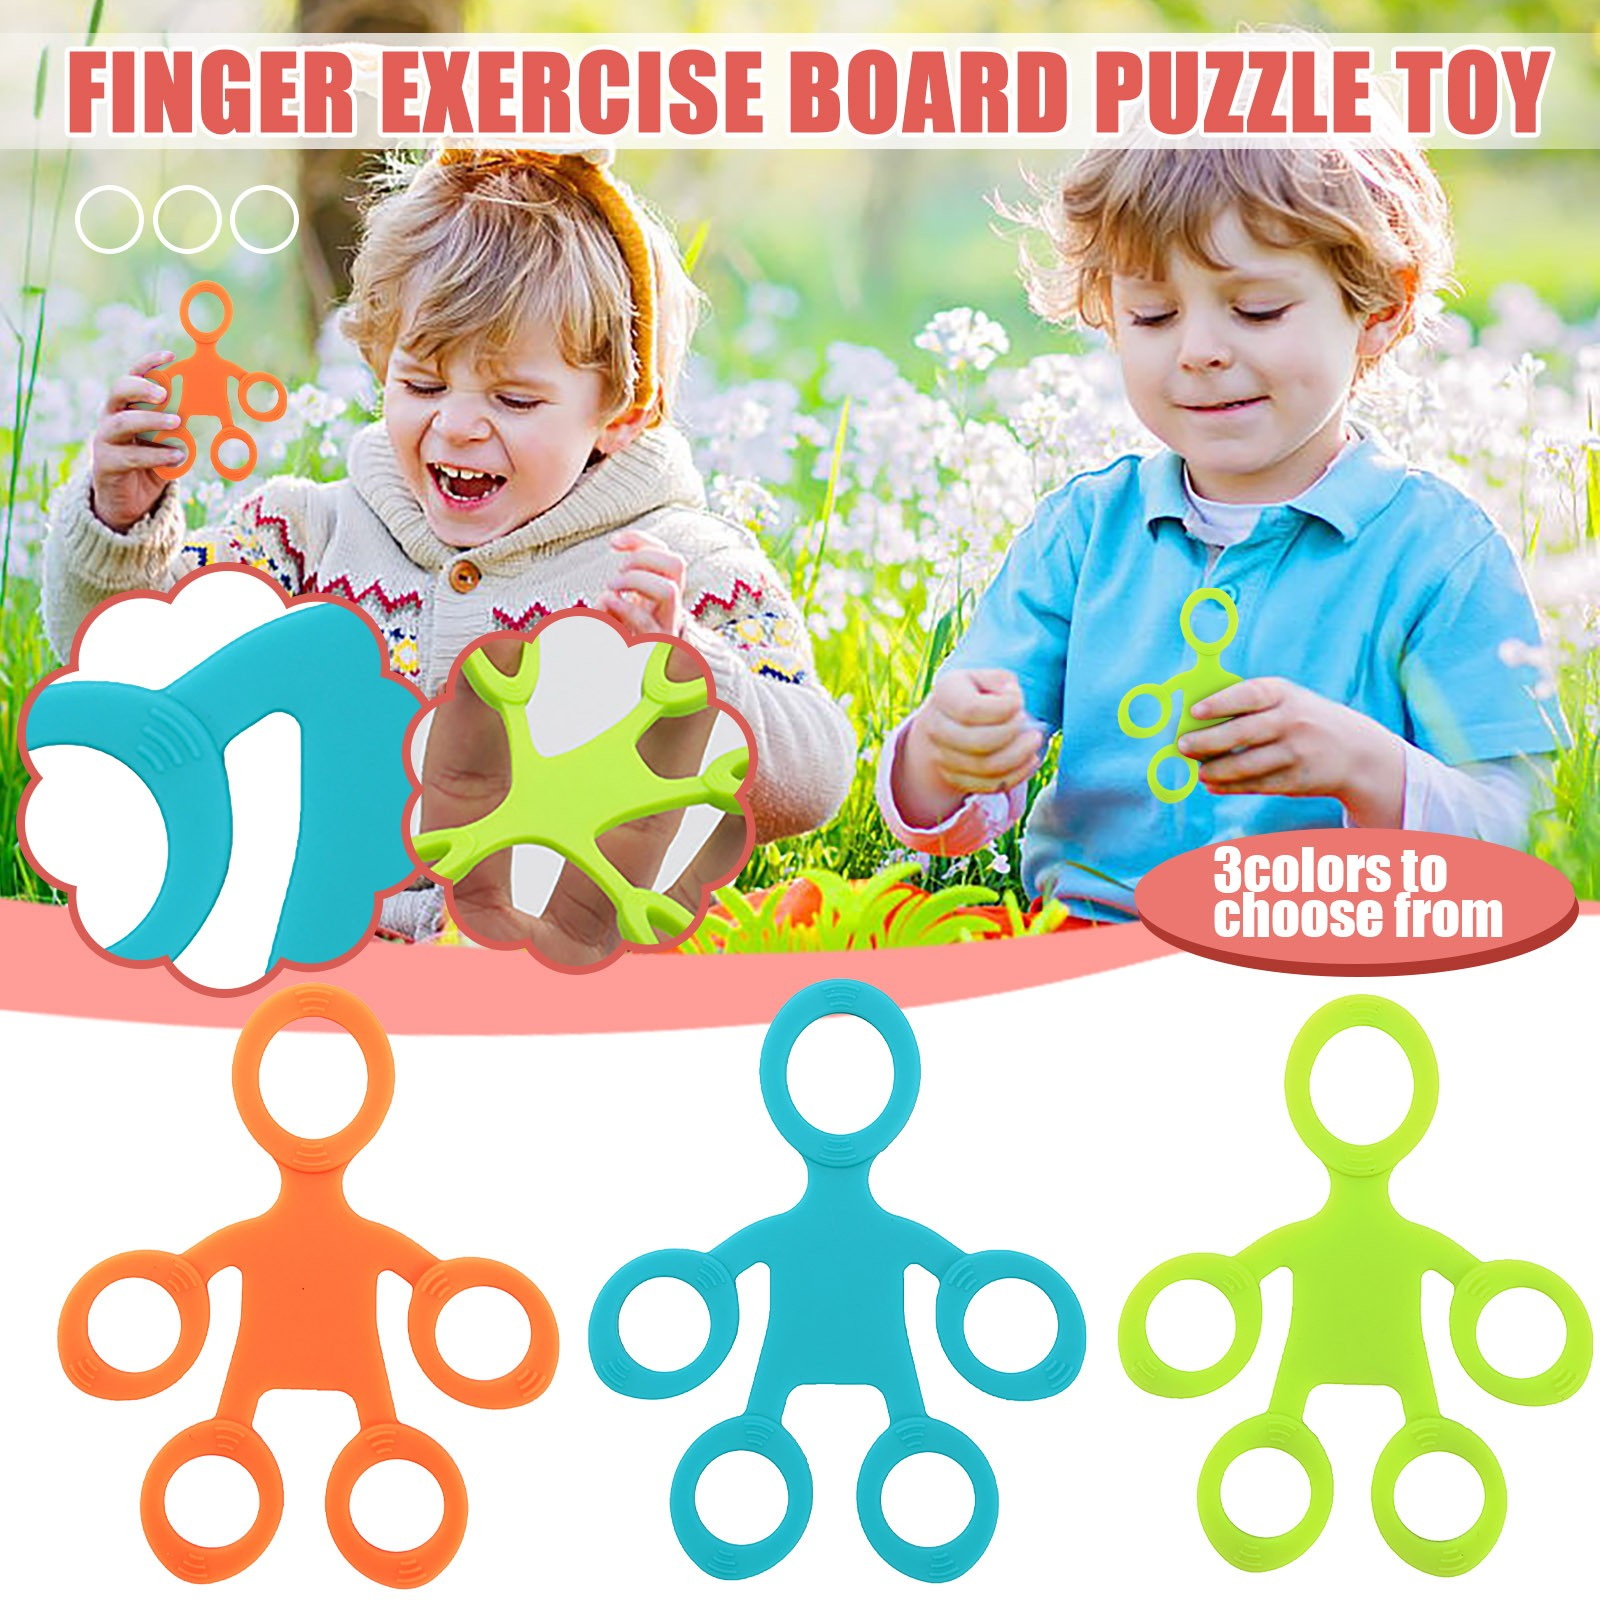 Toys Hand-Ring Finger-Puller Fidget Gifts Antistress Children Silica-Gel Adult for Squish img4